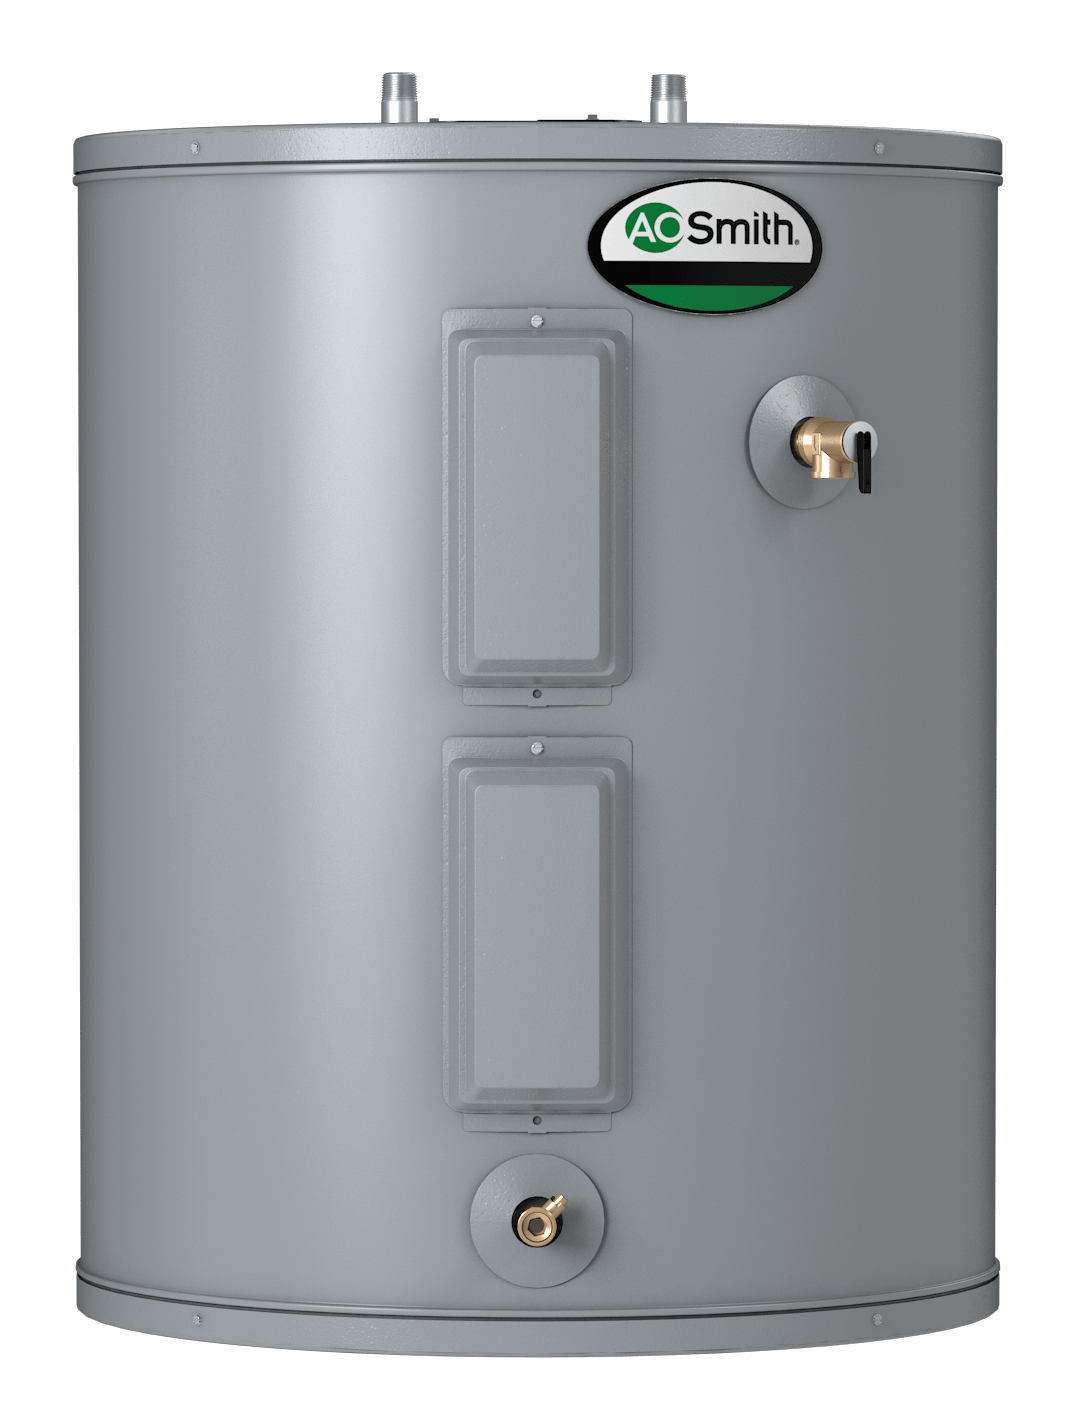 ao smith 50 gallon electric water heater wiring diagram polaris pool cleaner parts heaters a o newsroom